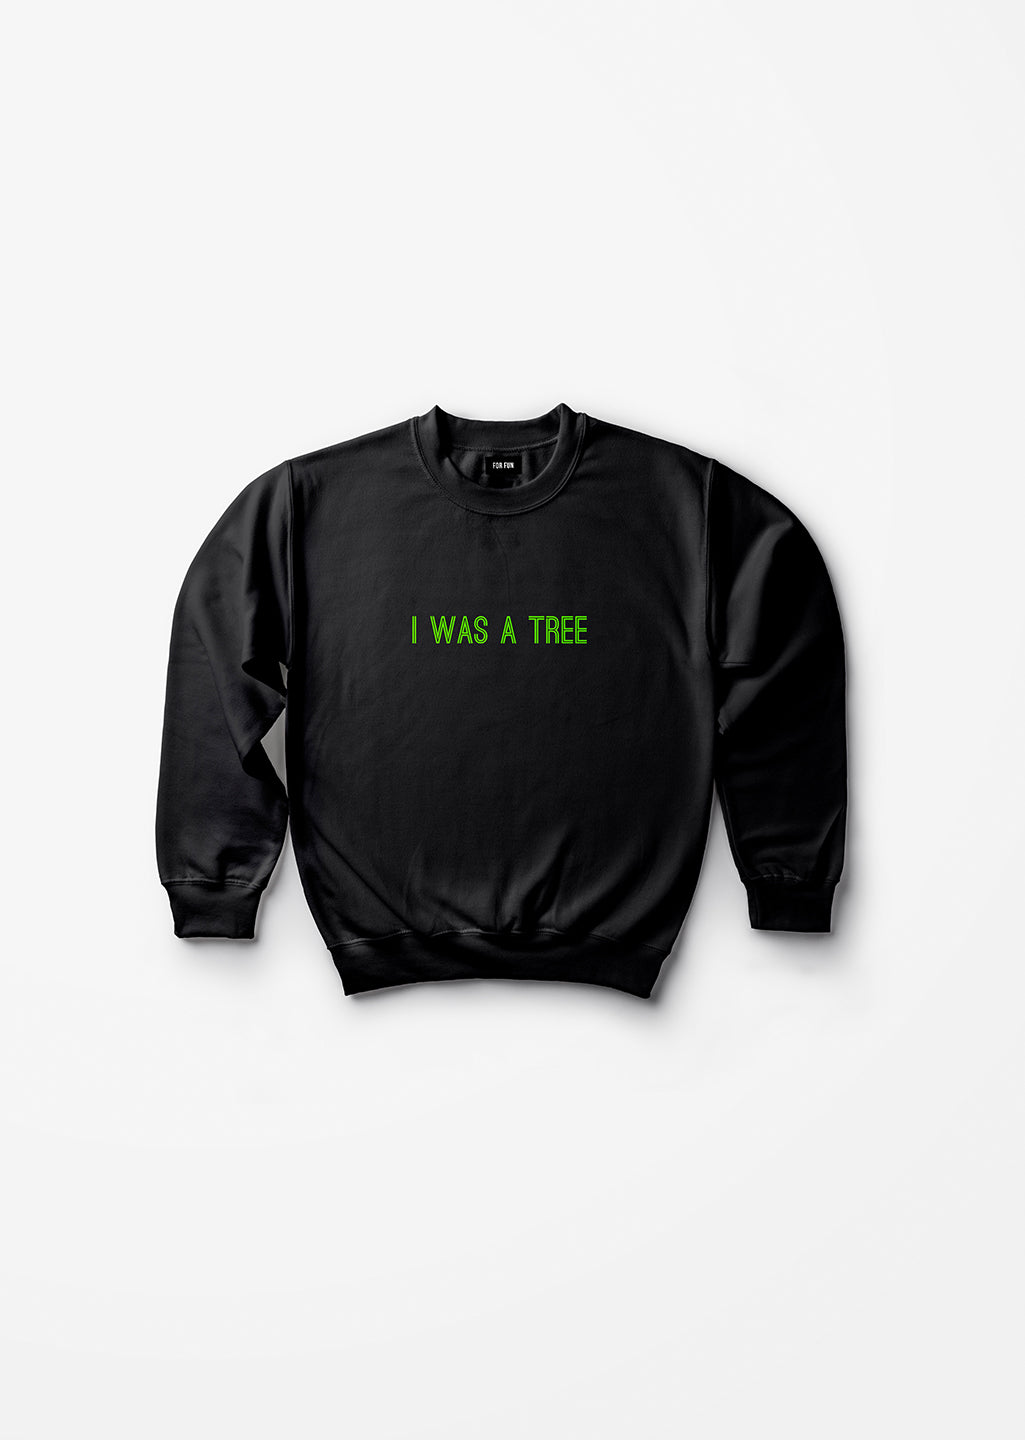 I Was A Tree / Unisex Sweatshirt